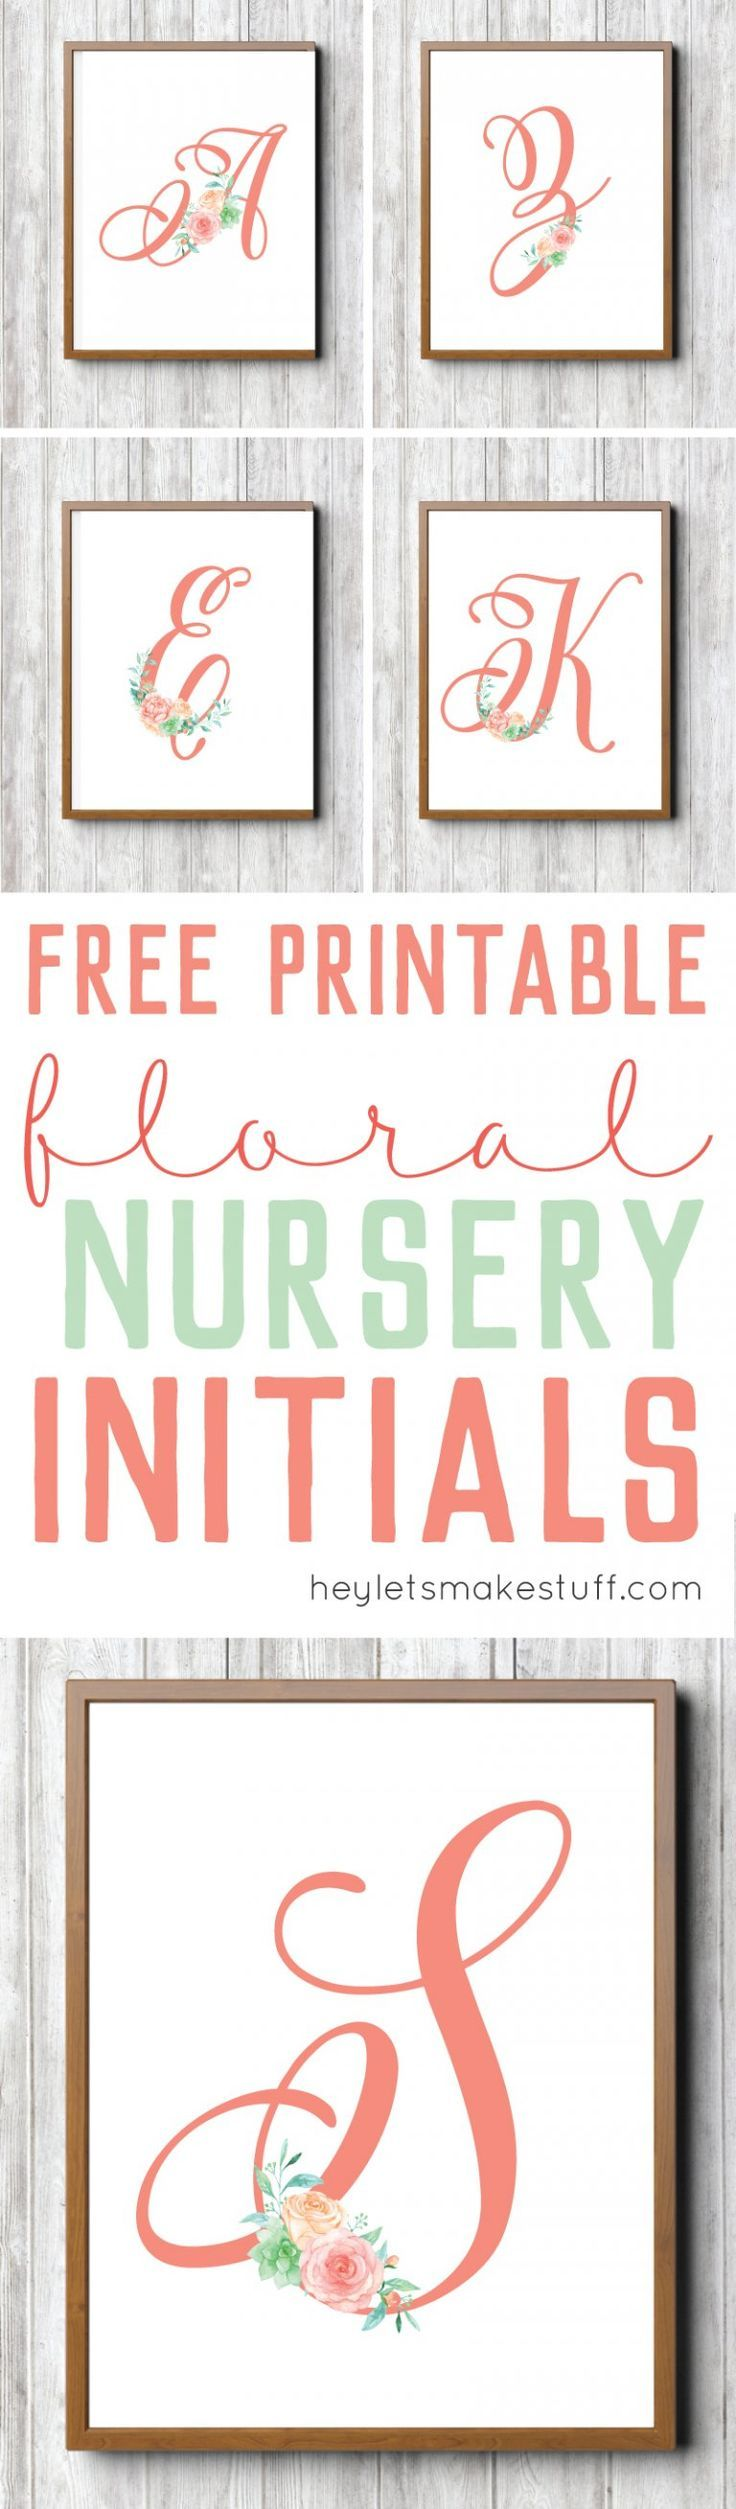 Set of 3 Digital Nursery Art Prints for Baby Girl Nursery Digital Download 70/% OFF Watercolor Floral Bouquets and Floral Initial Monogram